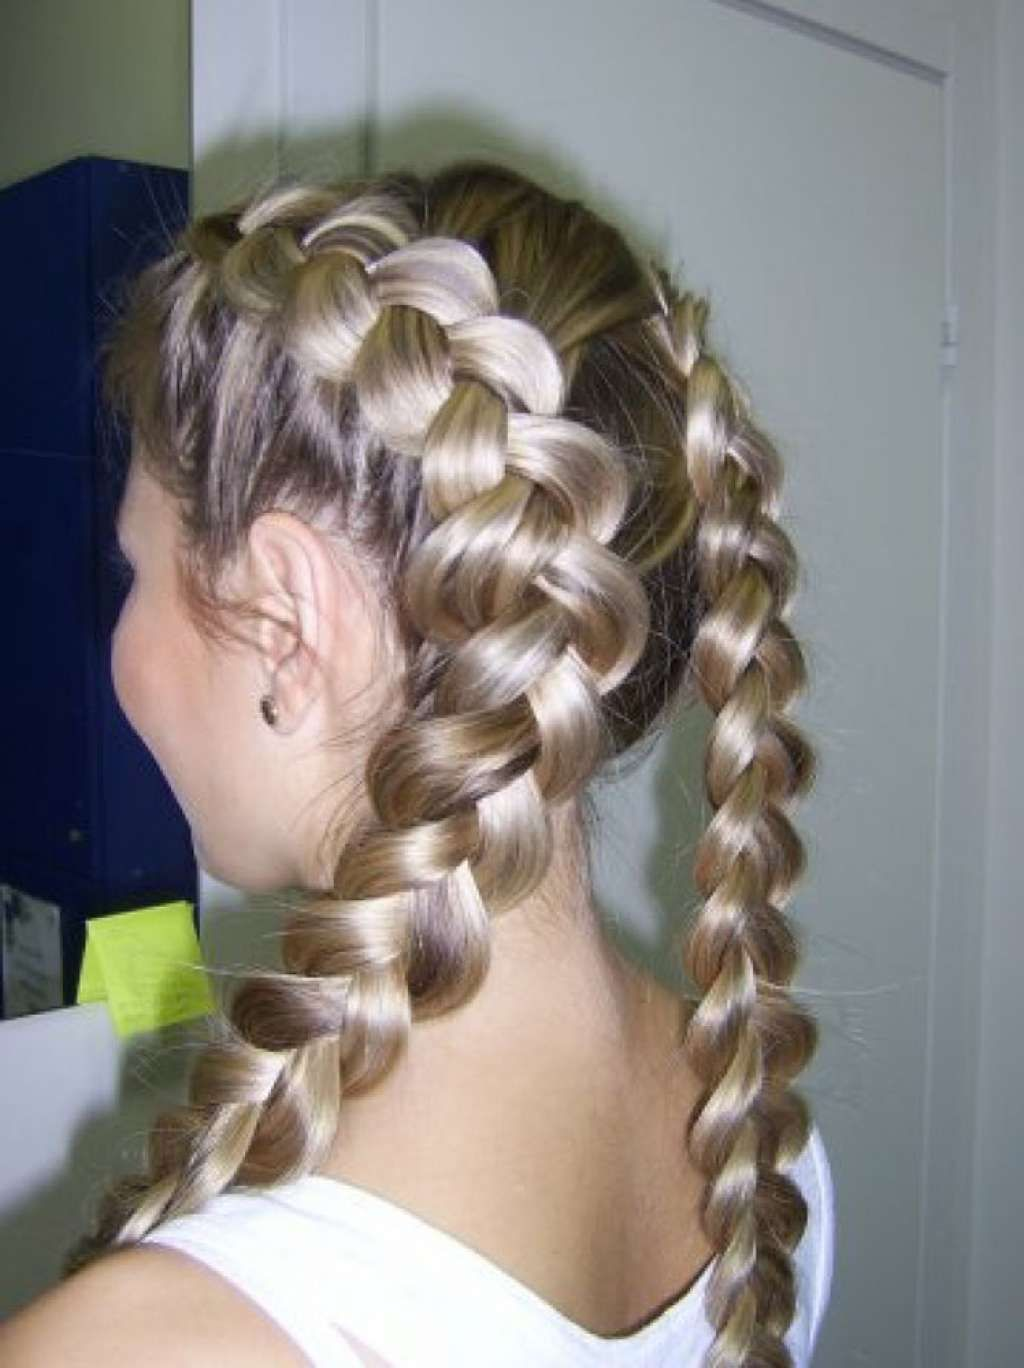 How to Style an Inverted French Braid Top Knot forecasting